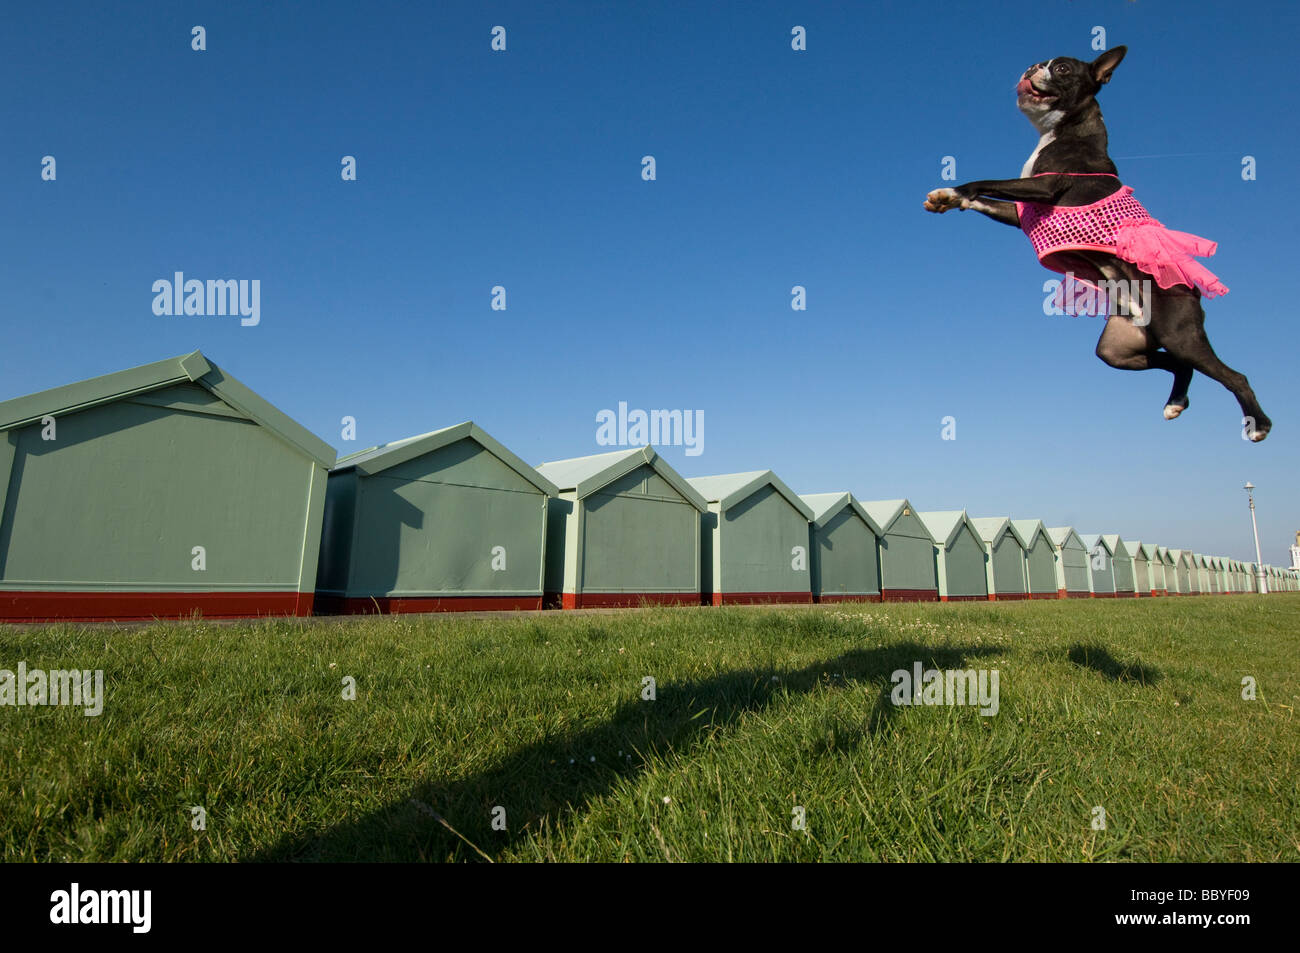 A Boston Terrier dog in a pink tutu leaping in the air by beach huts at the seaside at Brighton and Hove - Stock Image